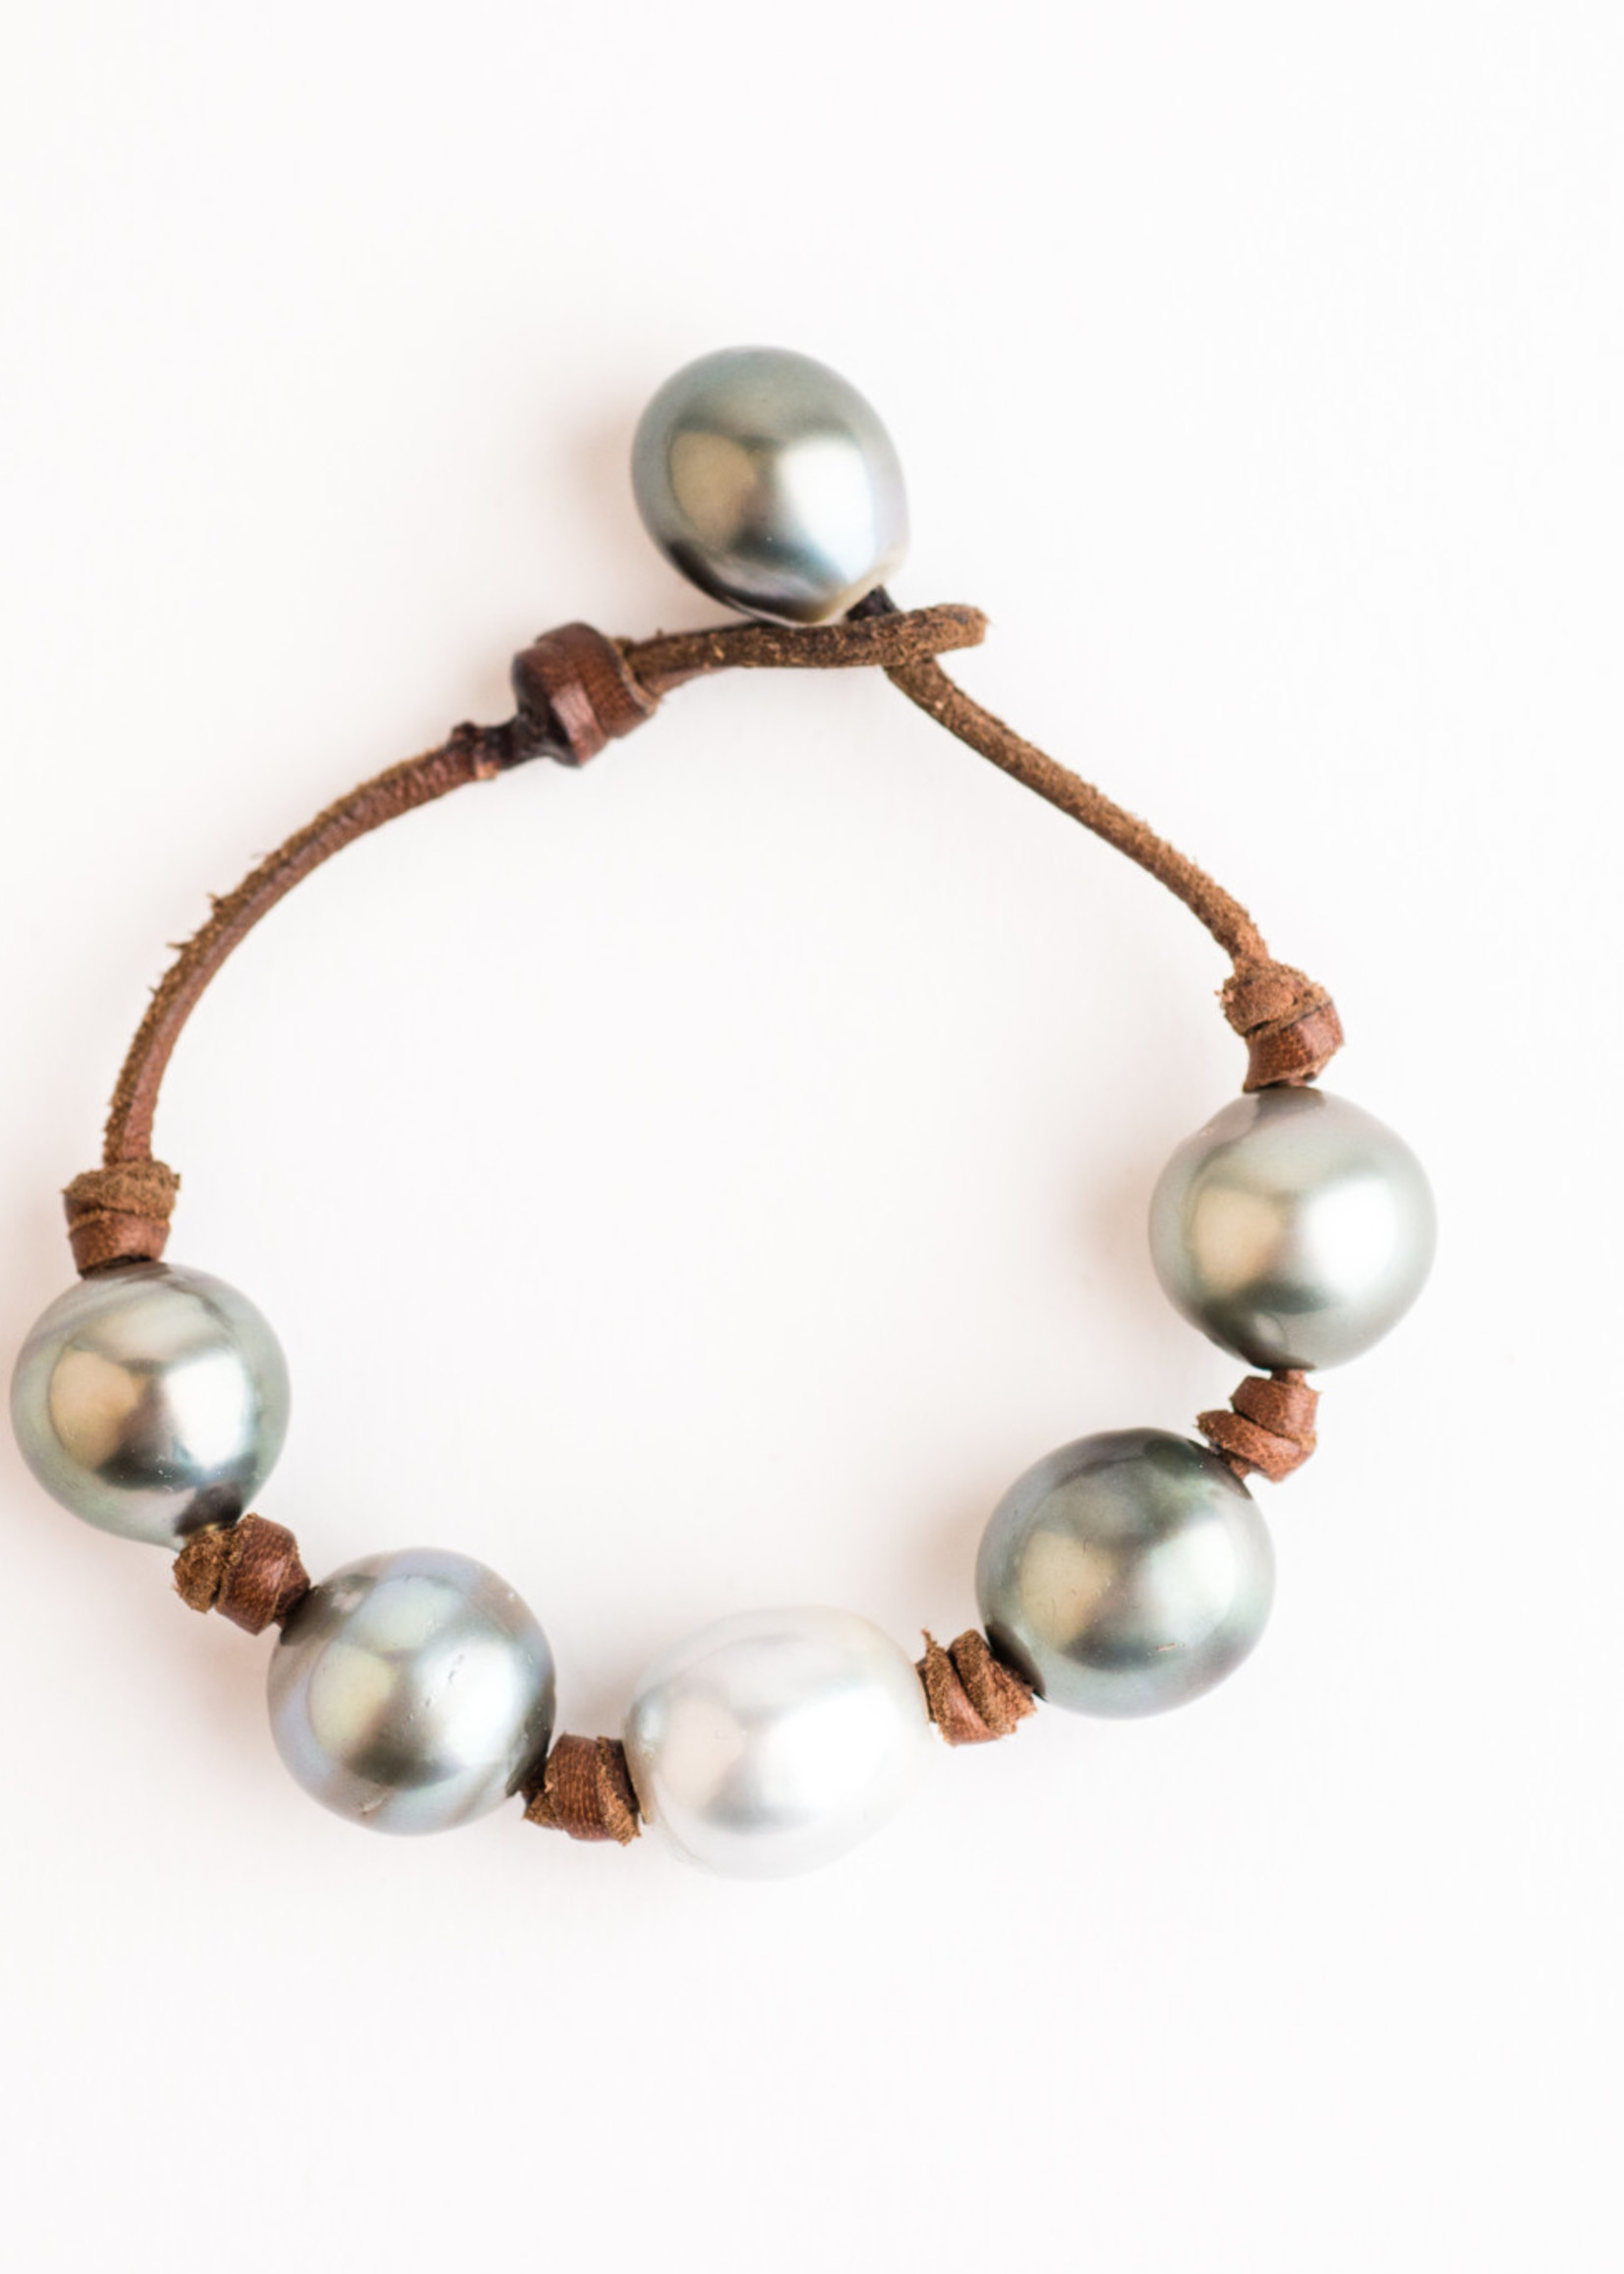 Mina Danielle Light Gray Tahitian and White South Sea Pearls knotted on Natural Leather Cord. Pearl Button Closure.